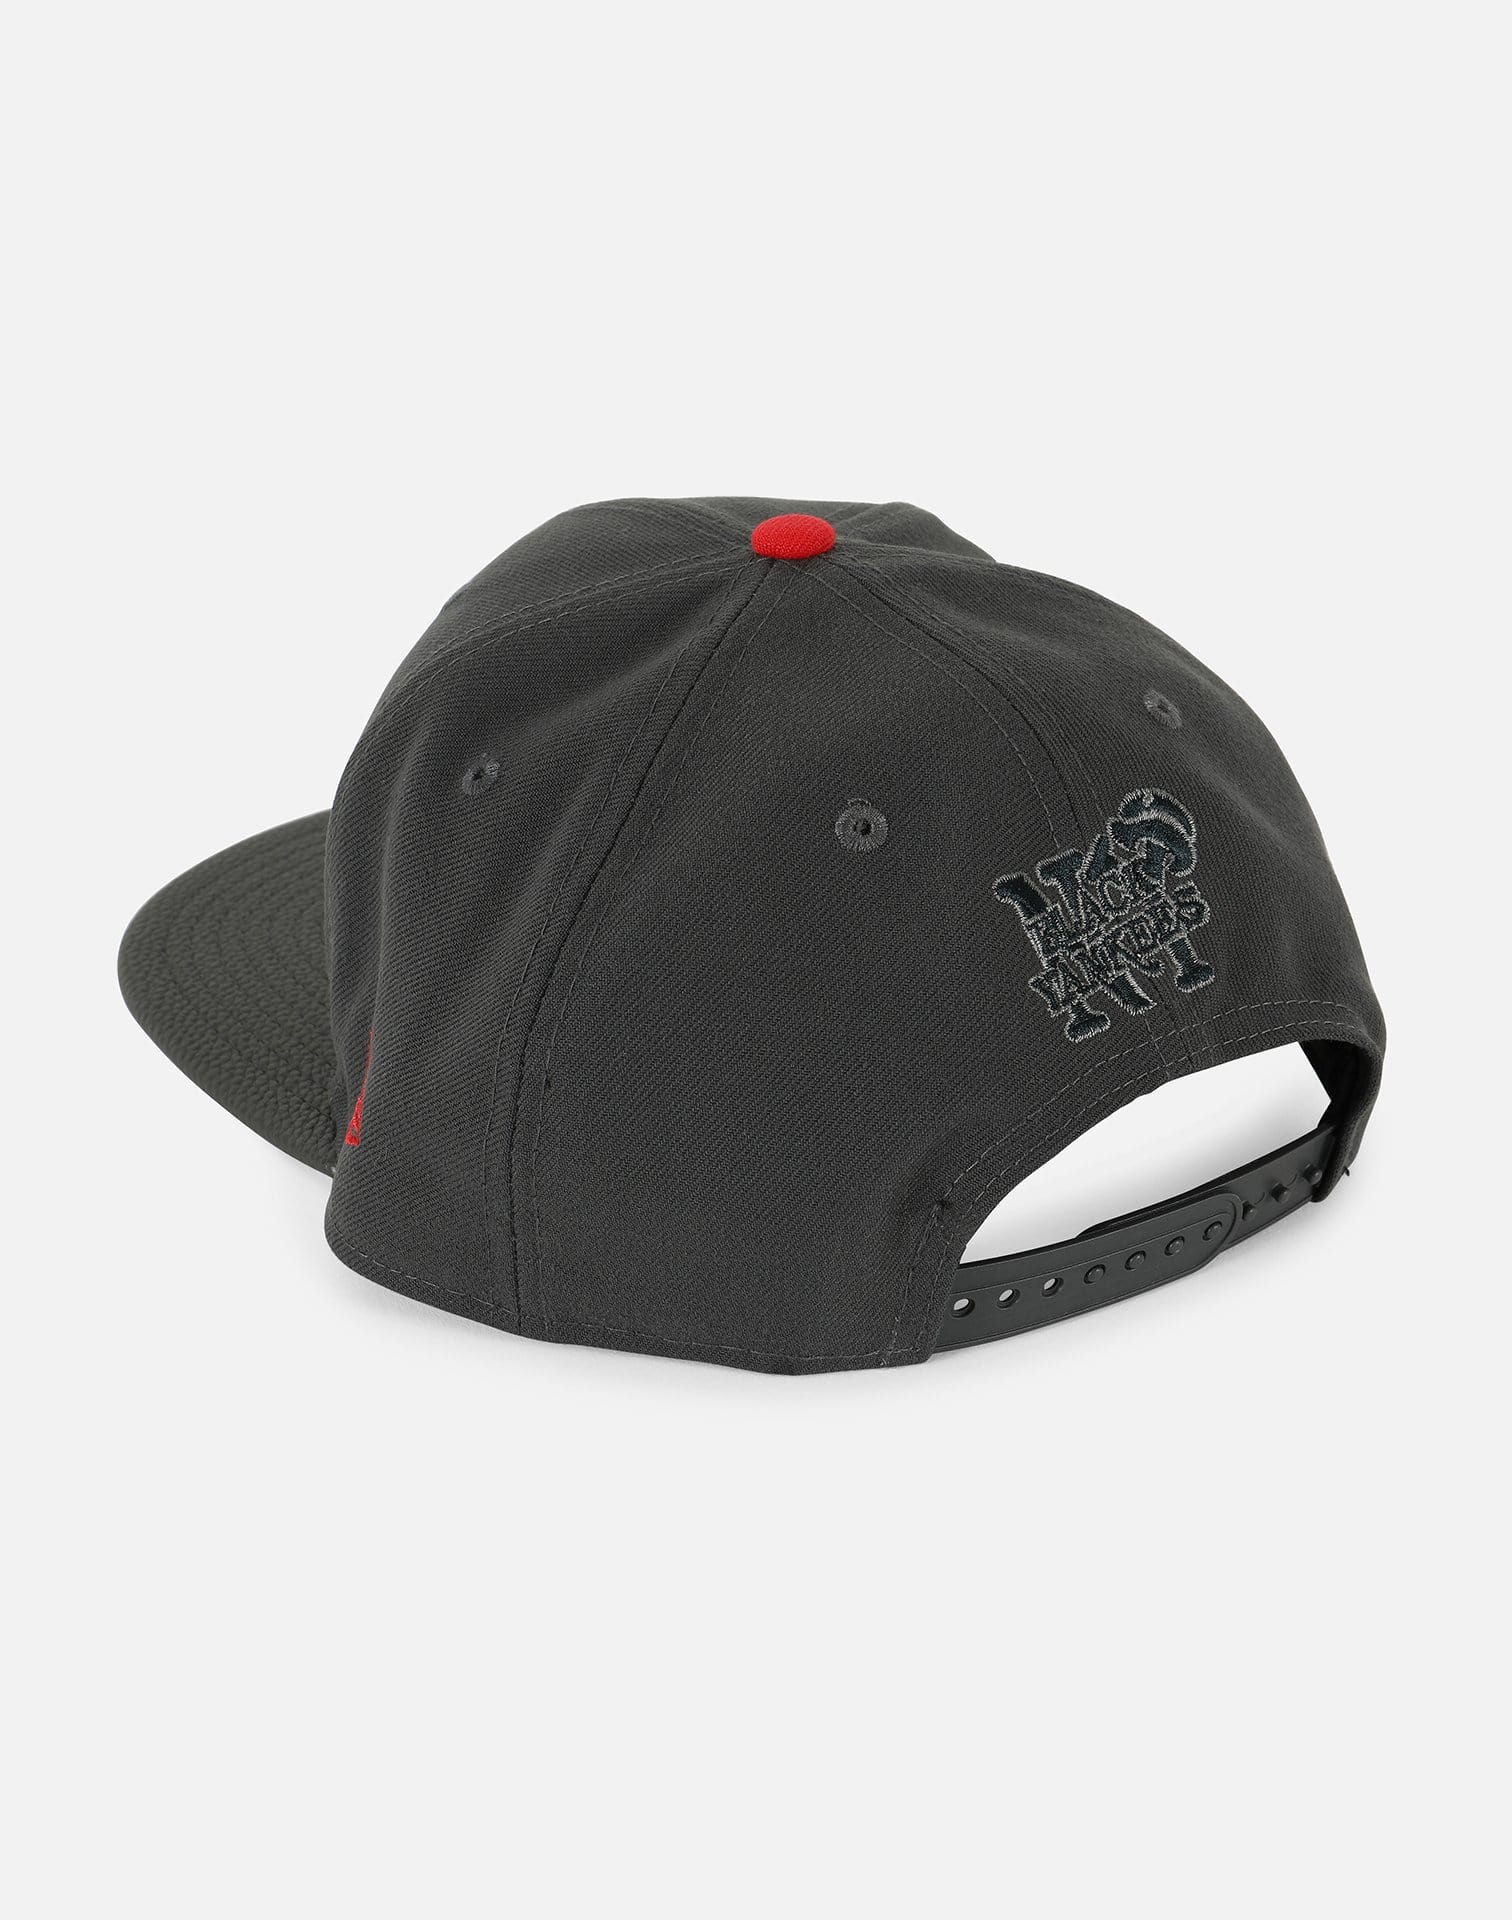 New Era Exclusive MLB New York Yankees Snapback Hat